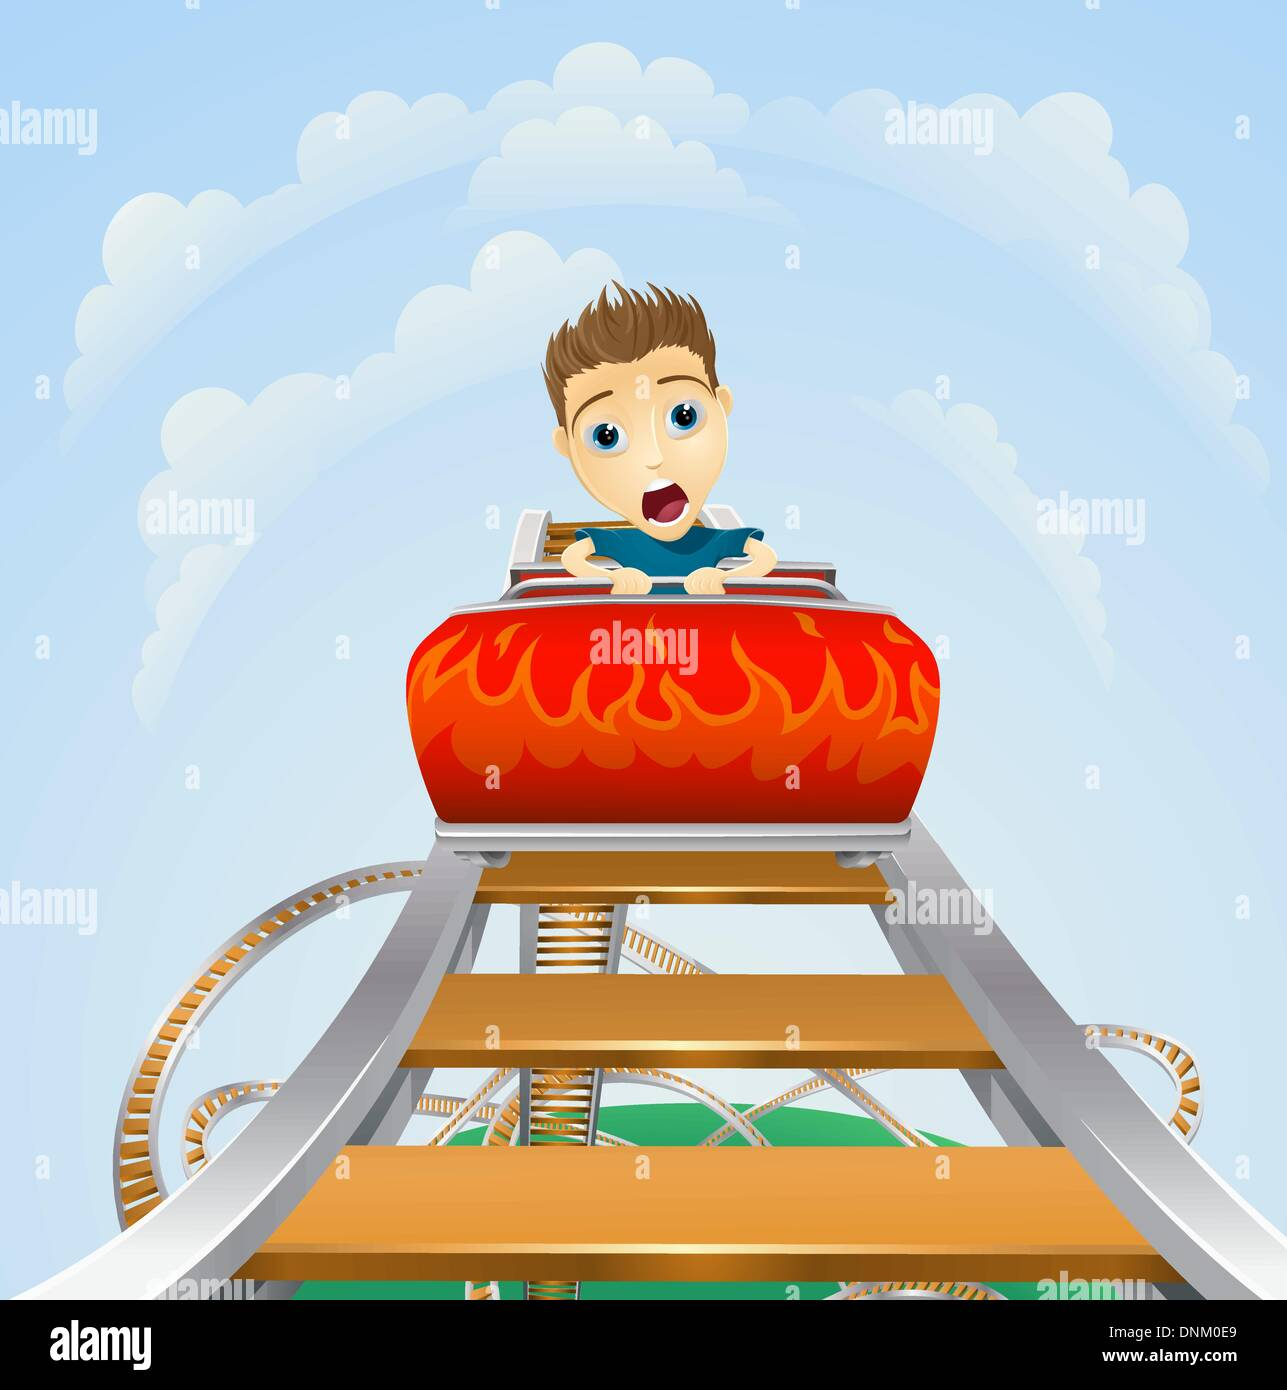 Cartoon of a young boy or man looking terrified on a roller coaster ride - Stock Vector